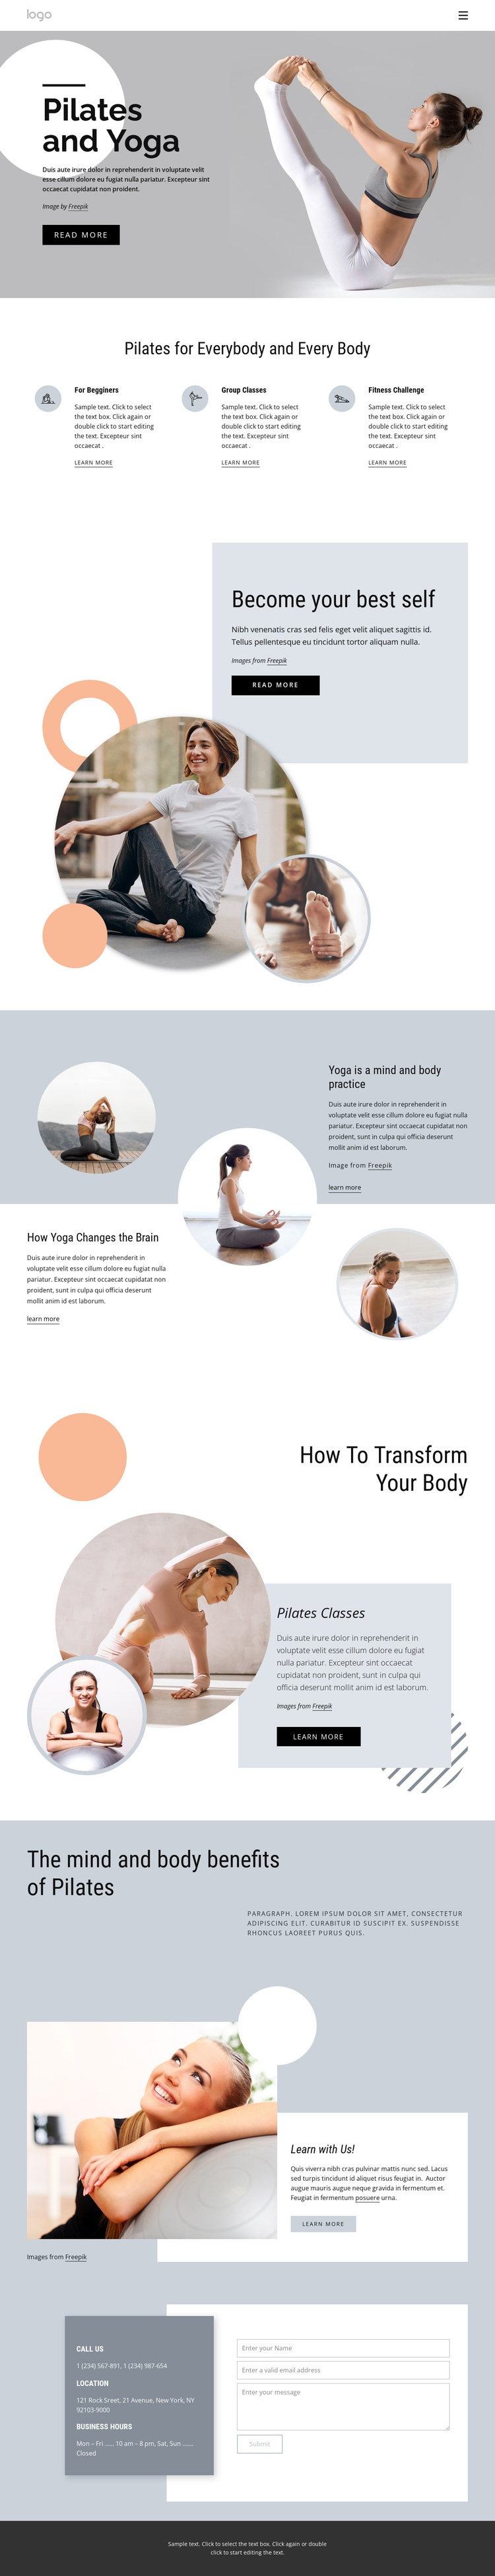 Pilates and yoga center One Page Template